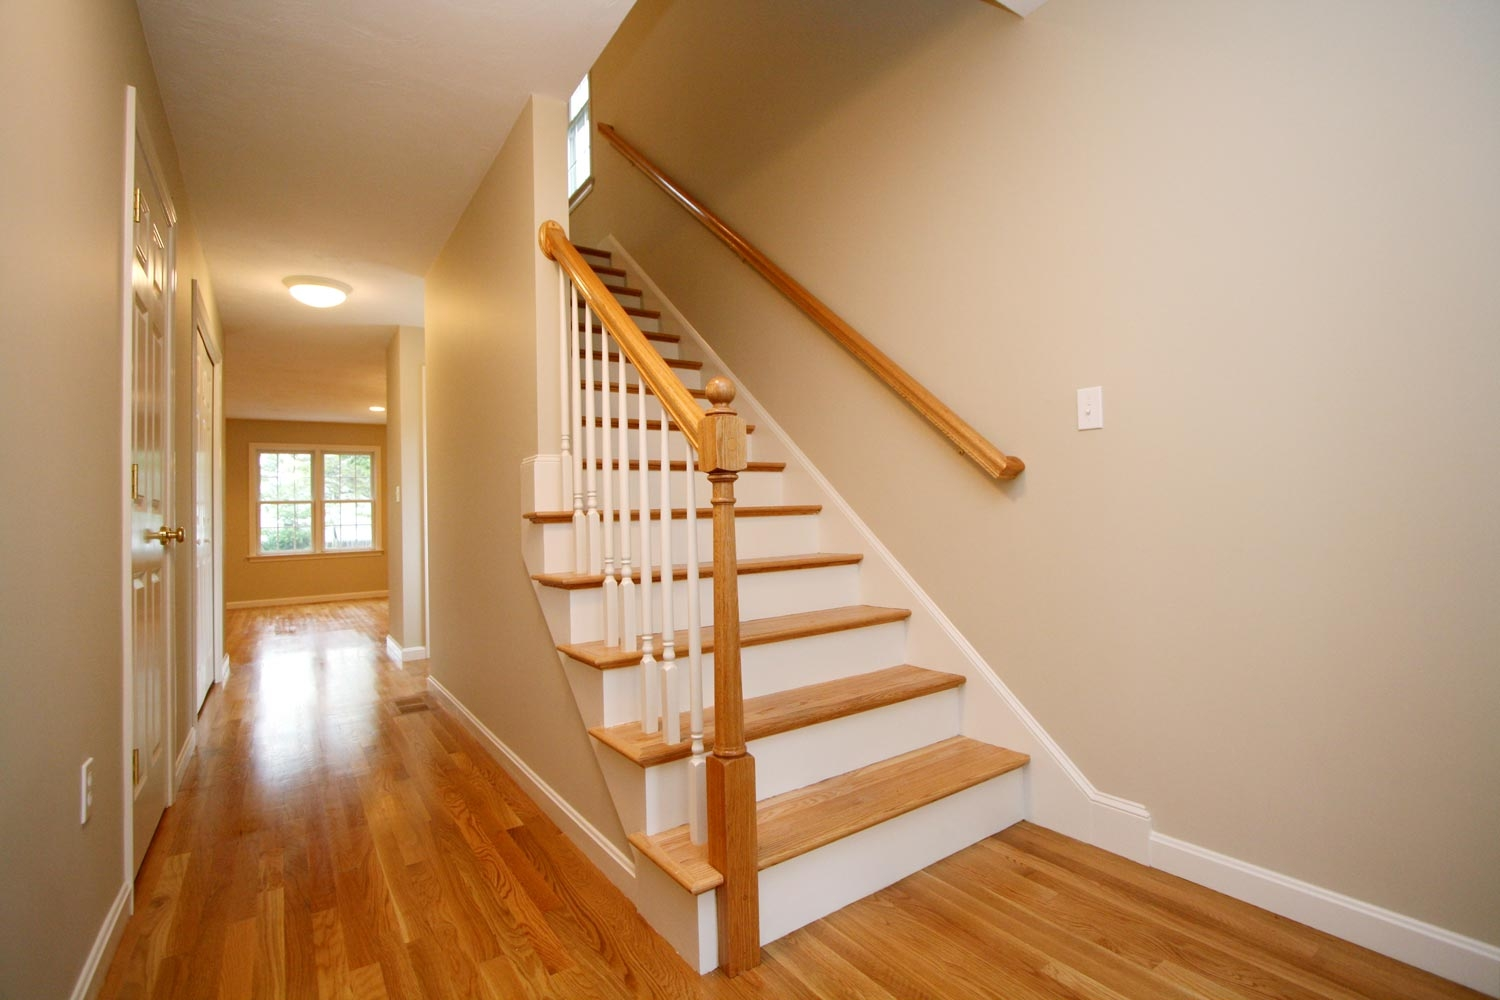 Stairs For House – Staircase Design | Stairs For House Design